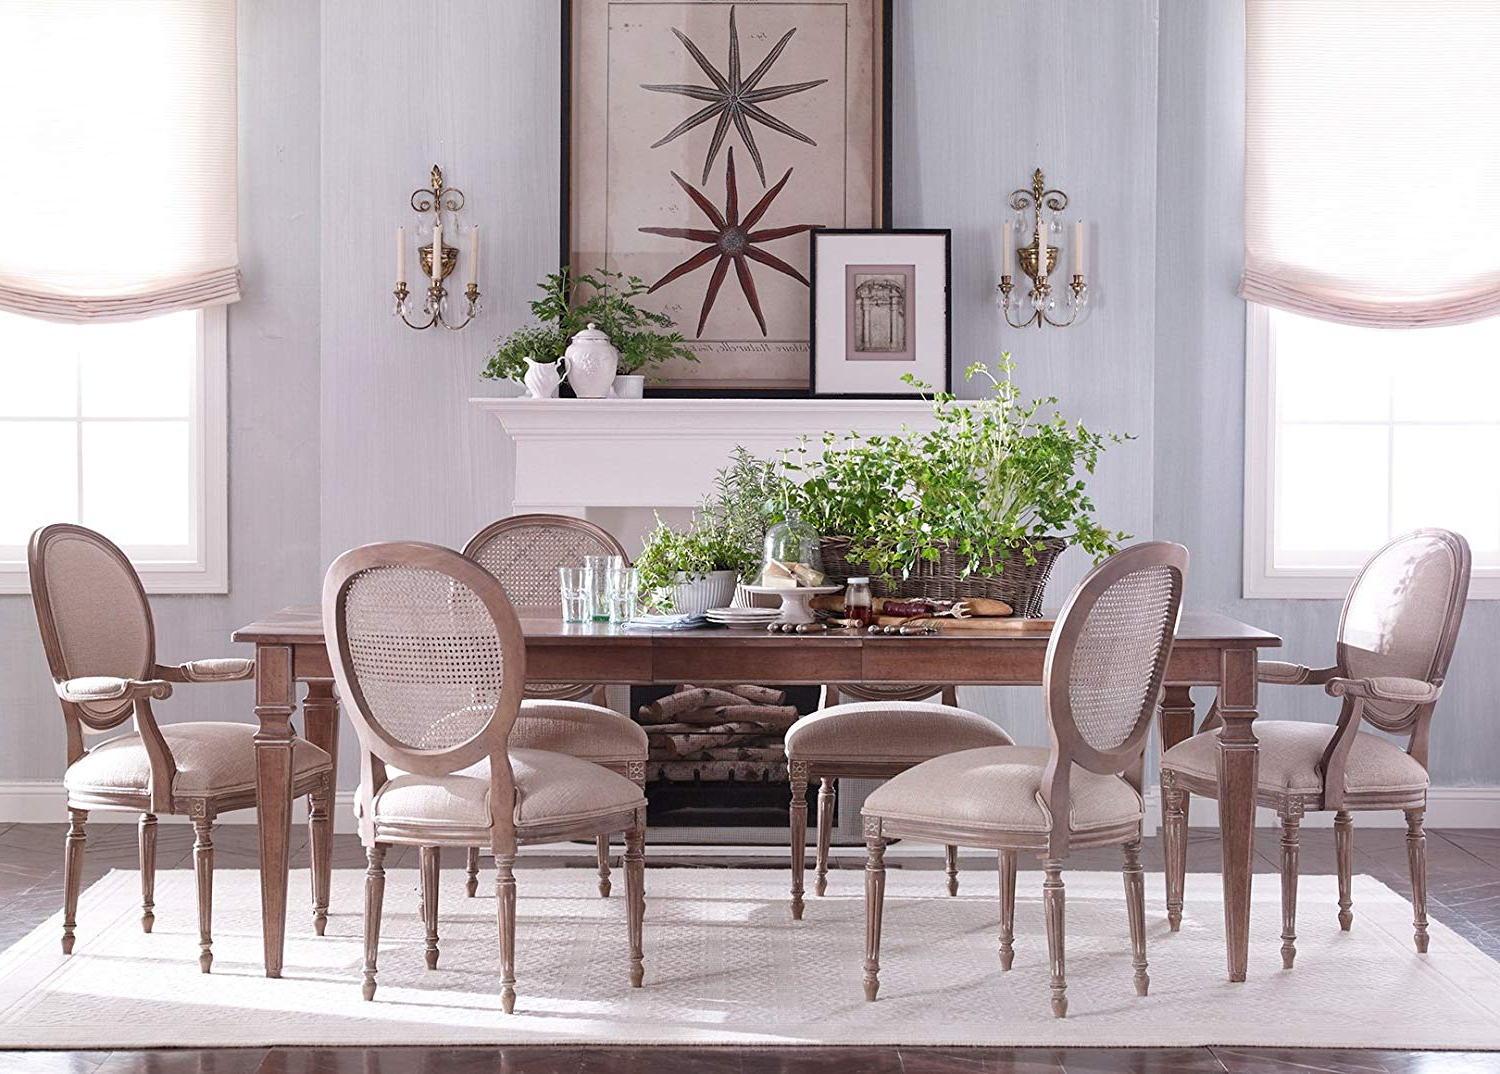 Well Known Avery Rectangular Dining Tables Intended For Amazon – Ethan Allen Avery Large Rectangular Extension (View 8 of 25)